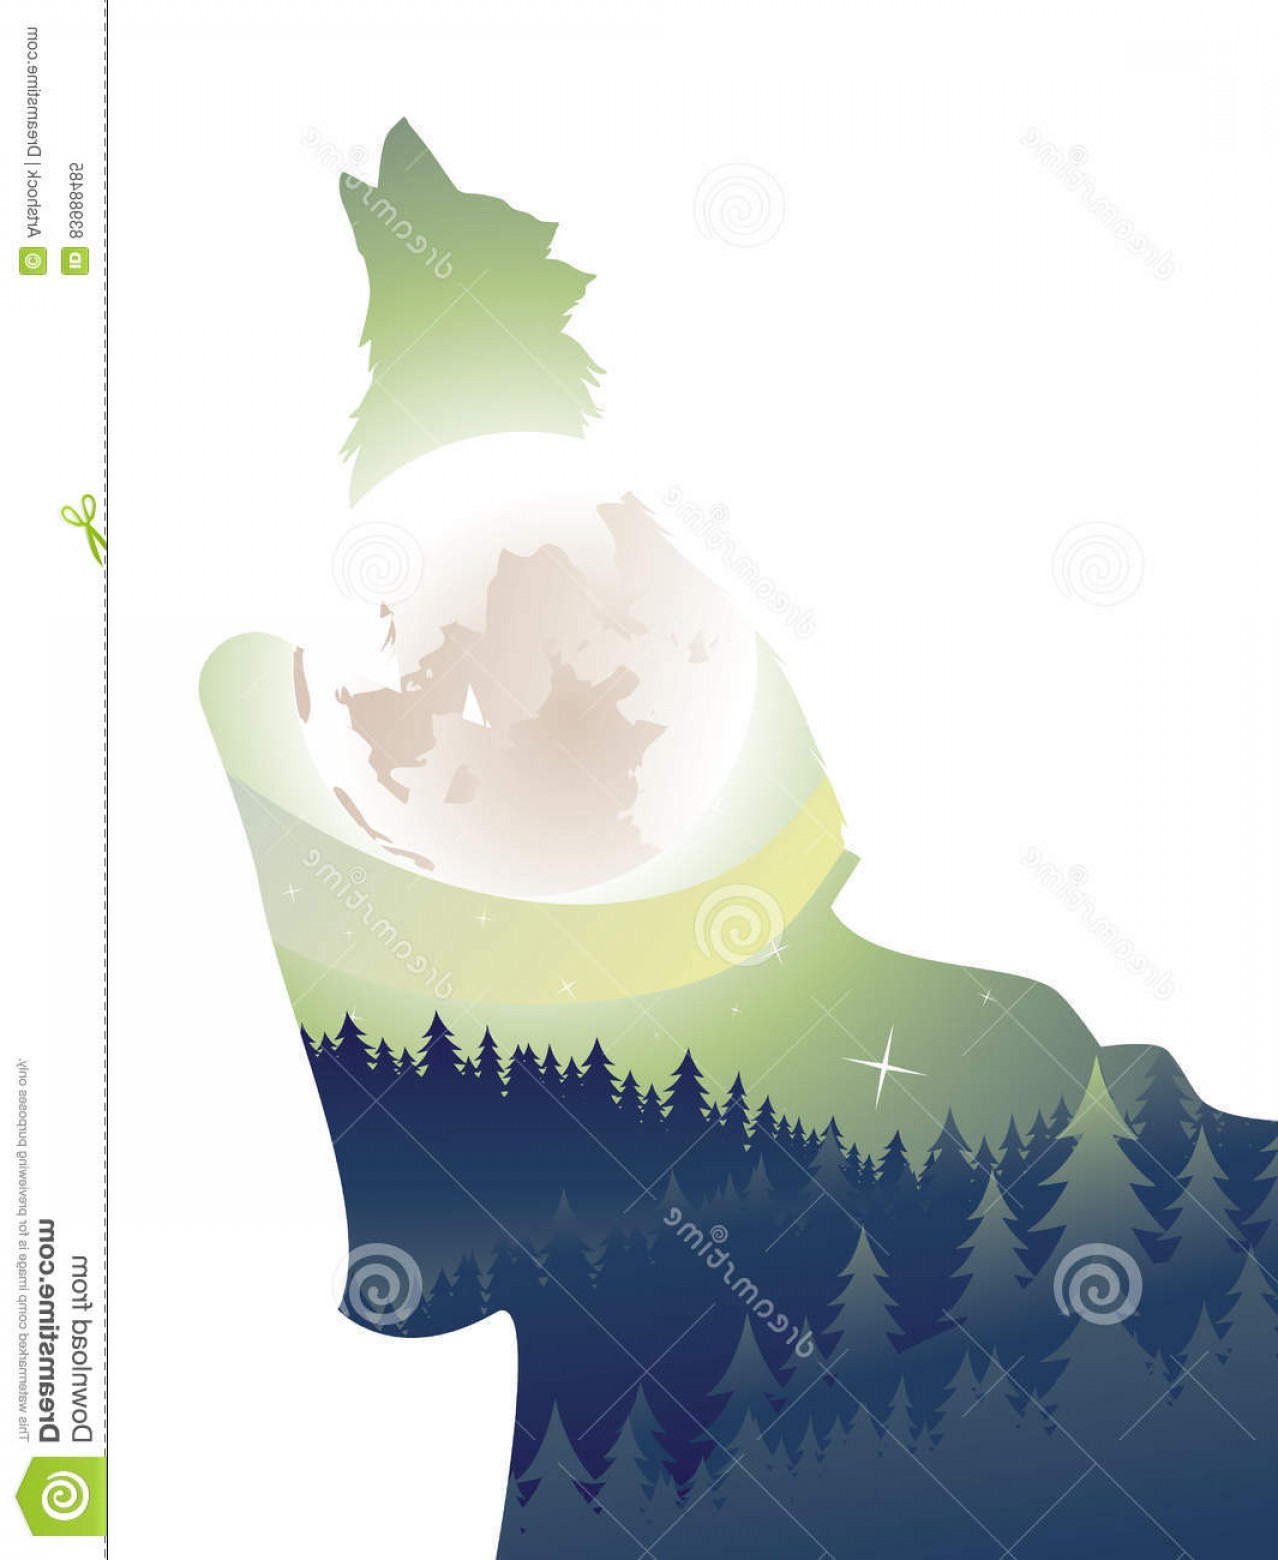 Calm Wolf Vector: Stock Illustration Wolf Howling Night Forest Silhouette Moon Image